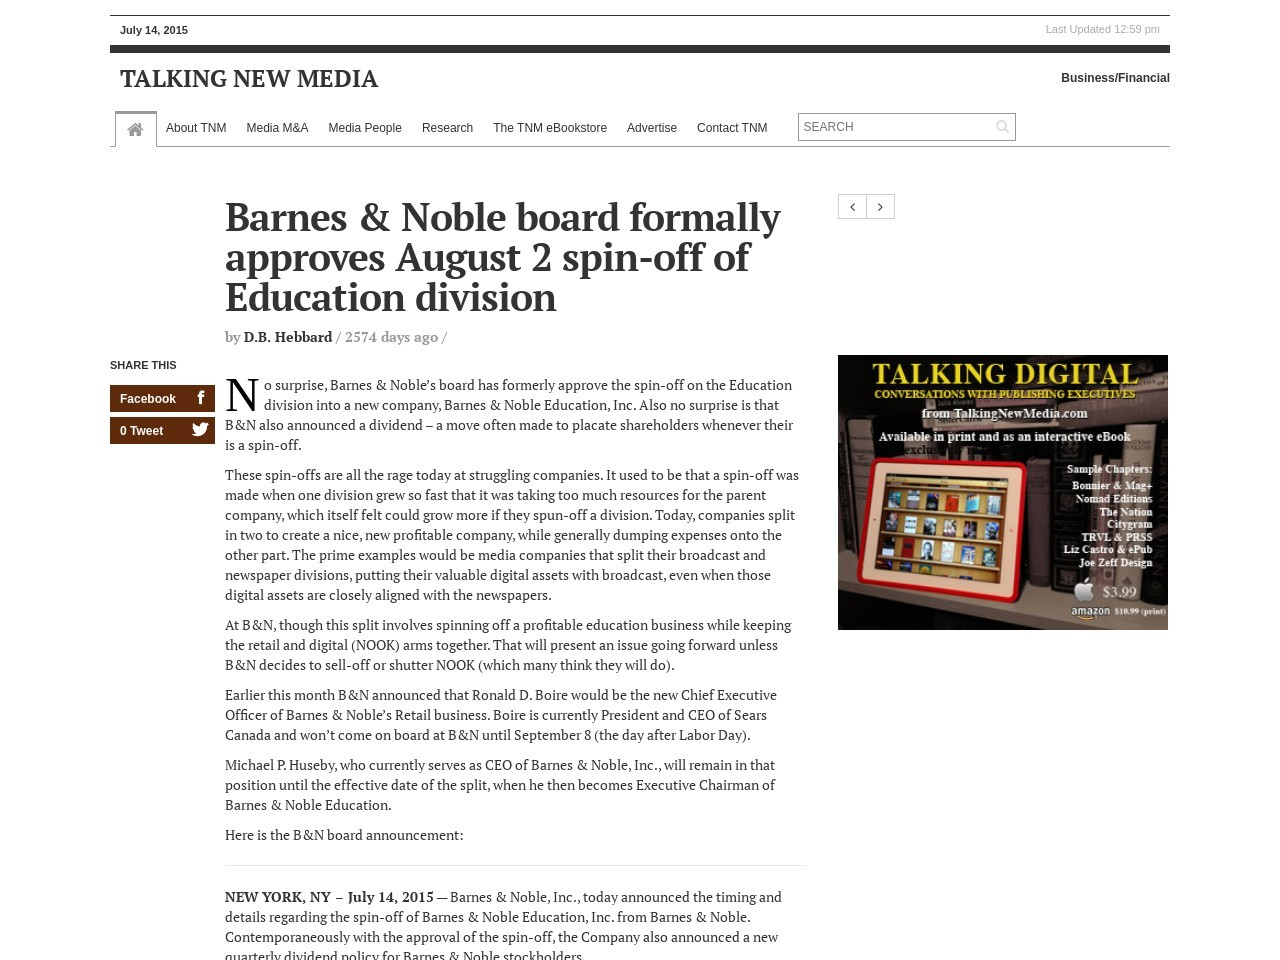 Barnes & Noble board formally approves August 2 spin-off of Education division